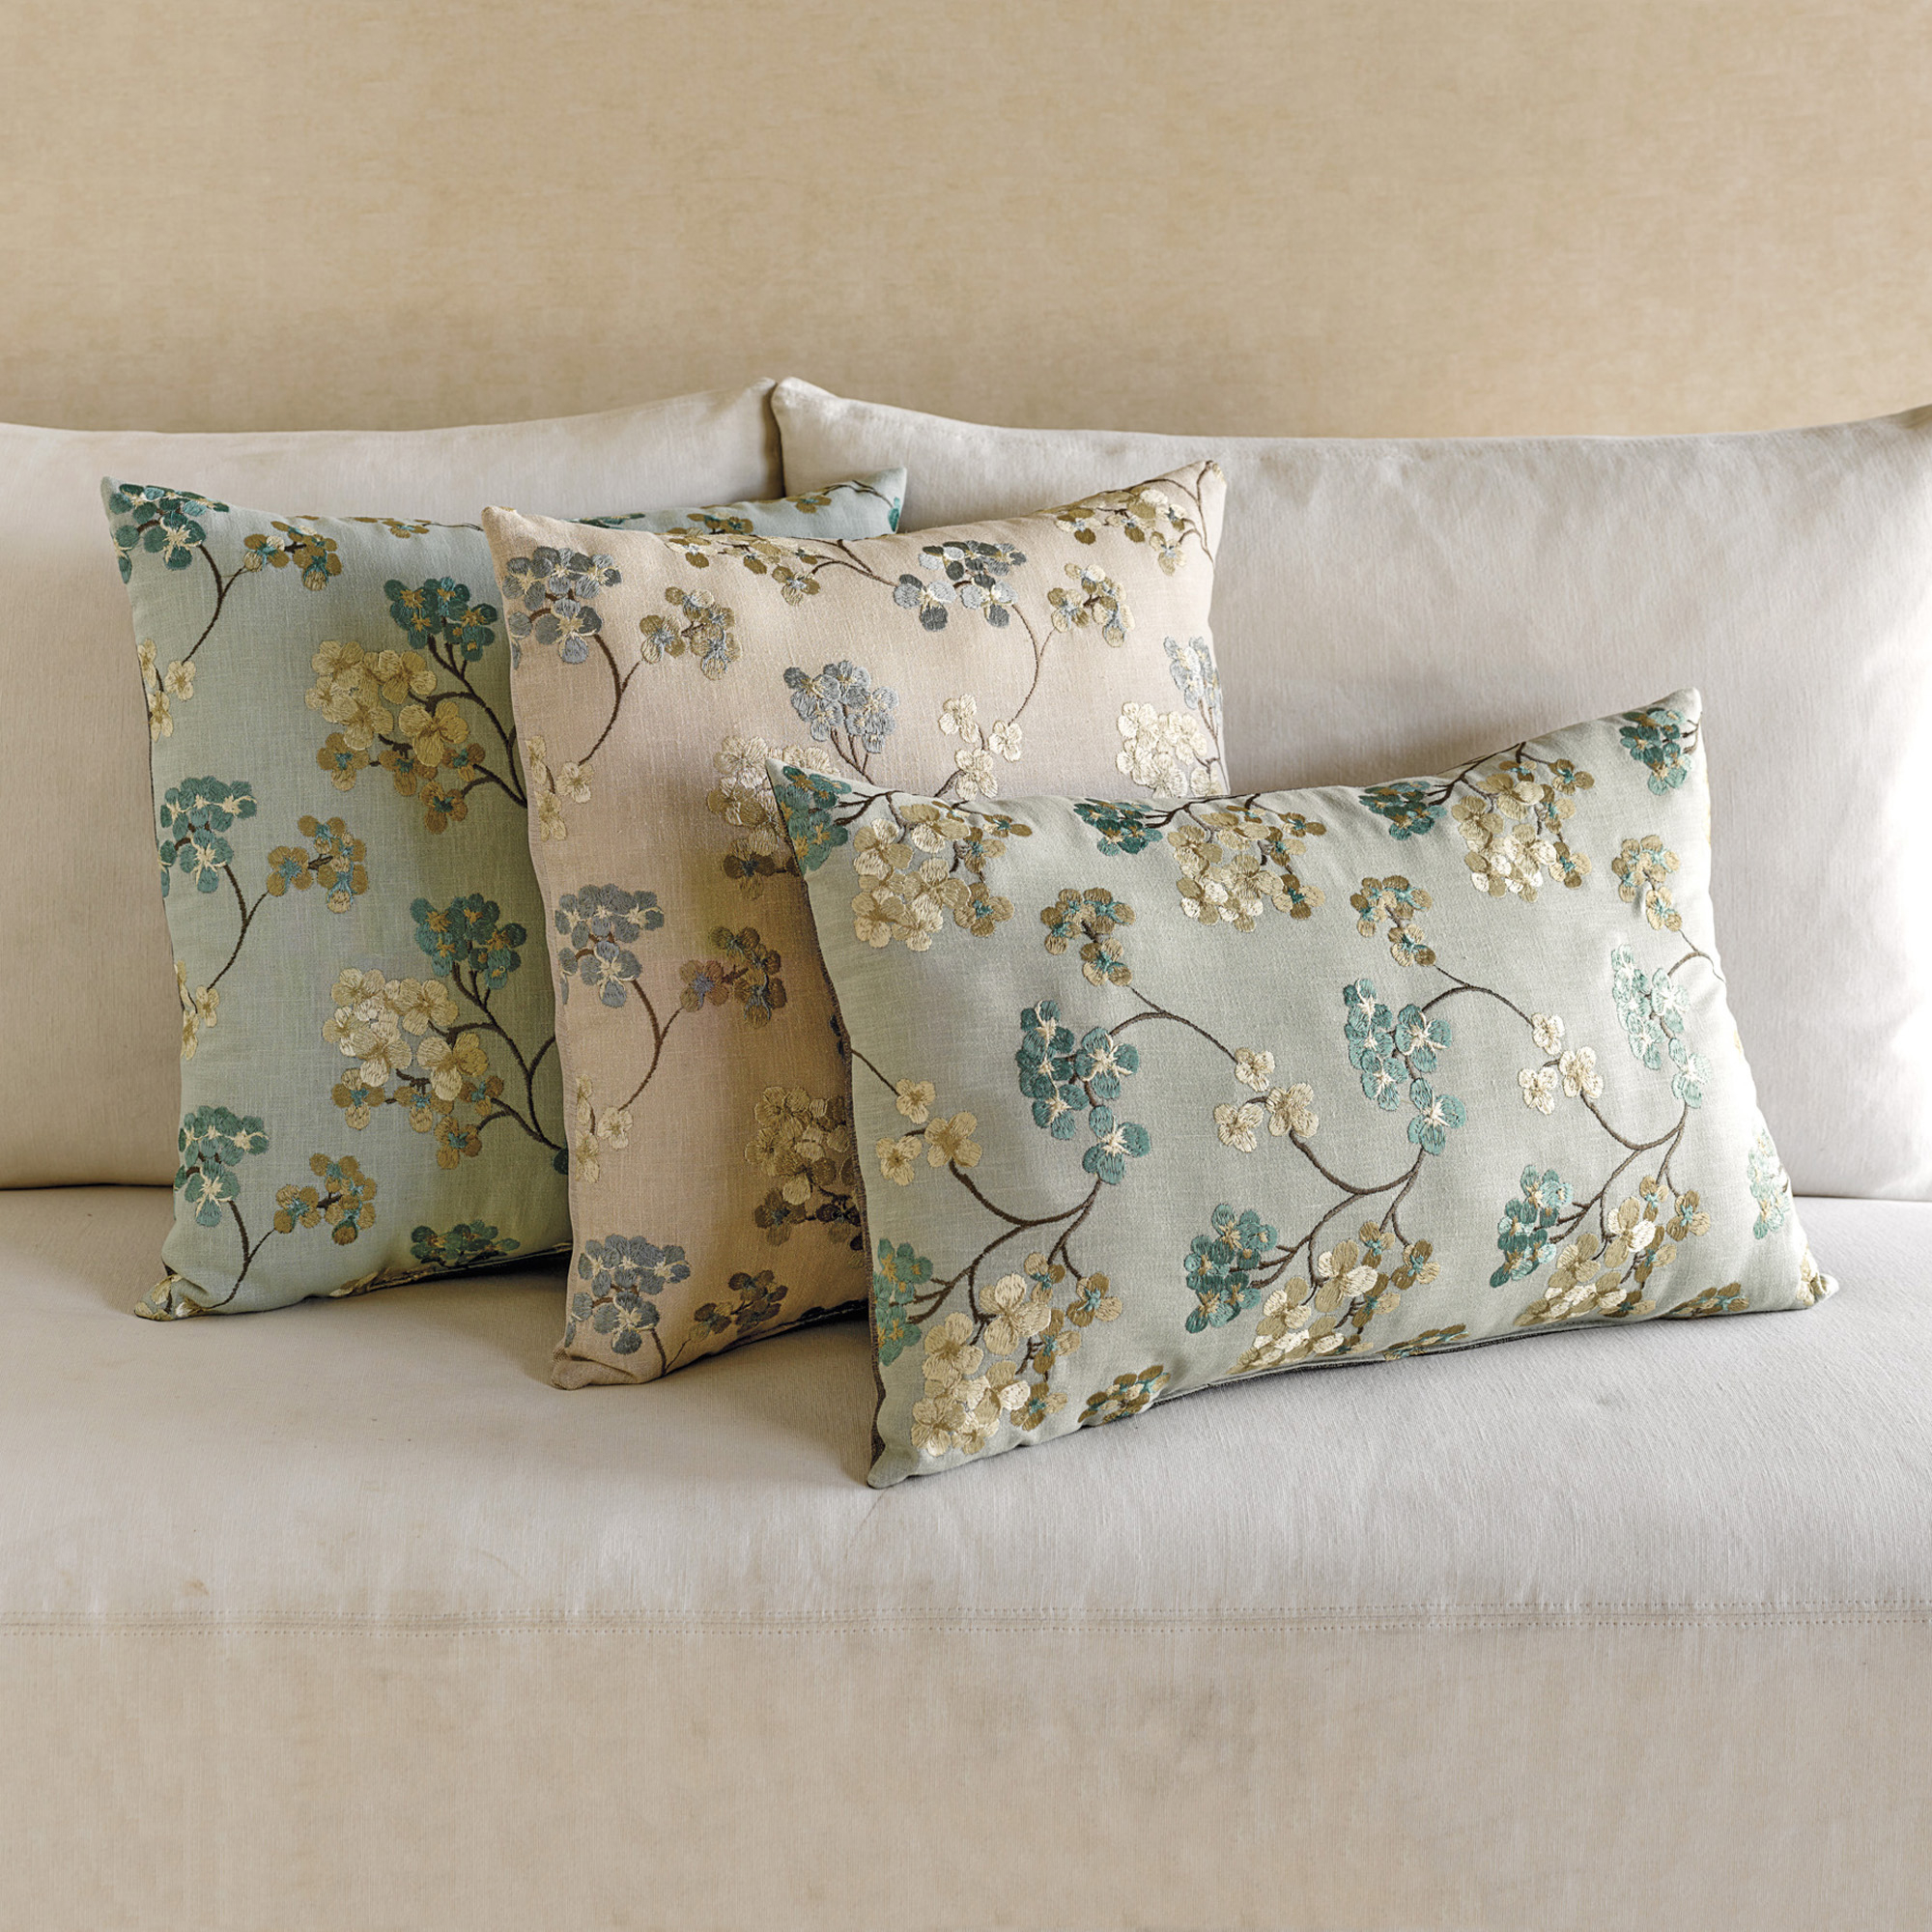 Bloomsbury Pillows